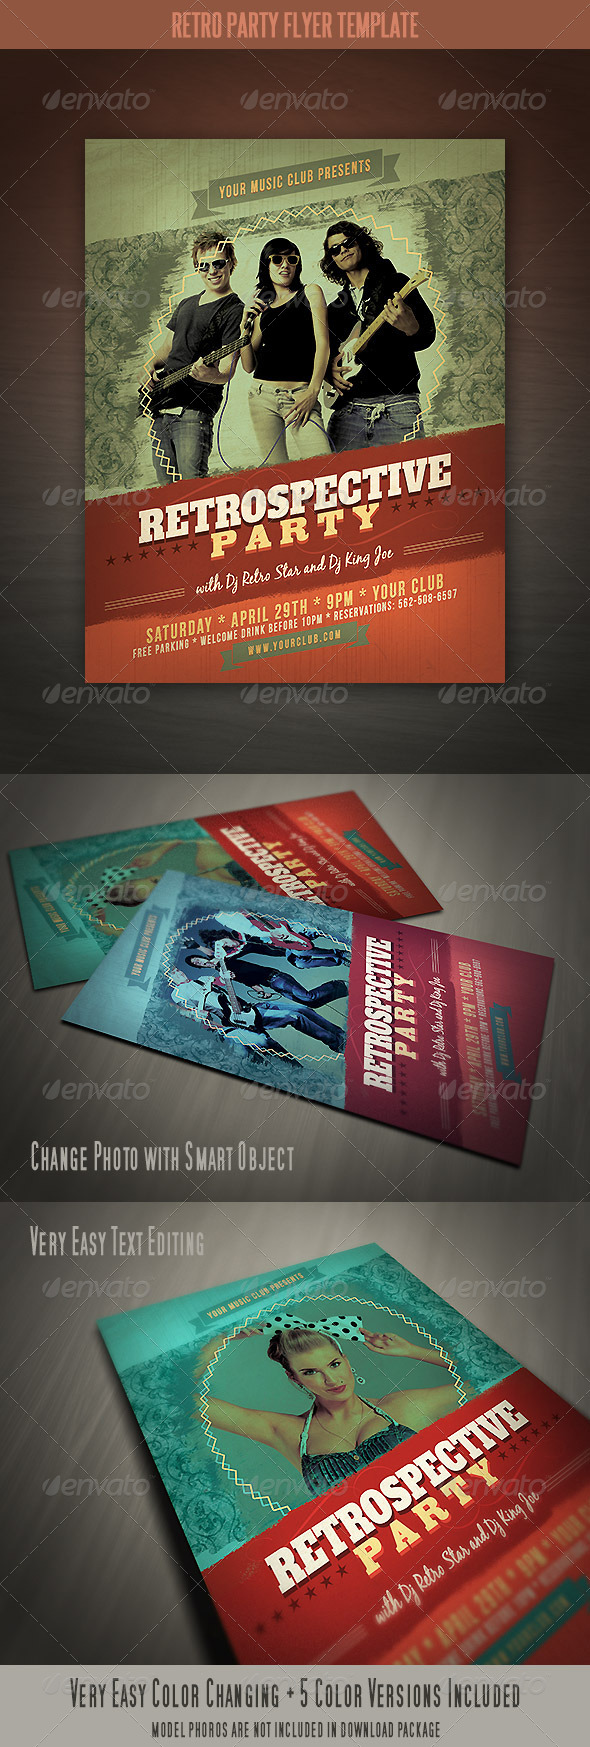 GraphicRiver Retro Party Flyer 4256777